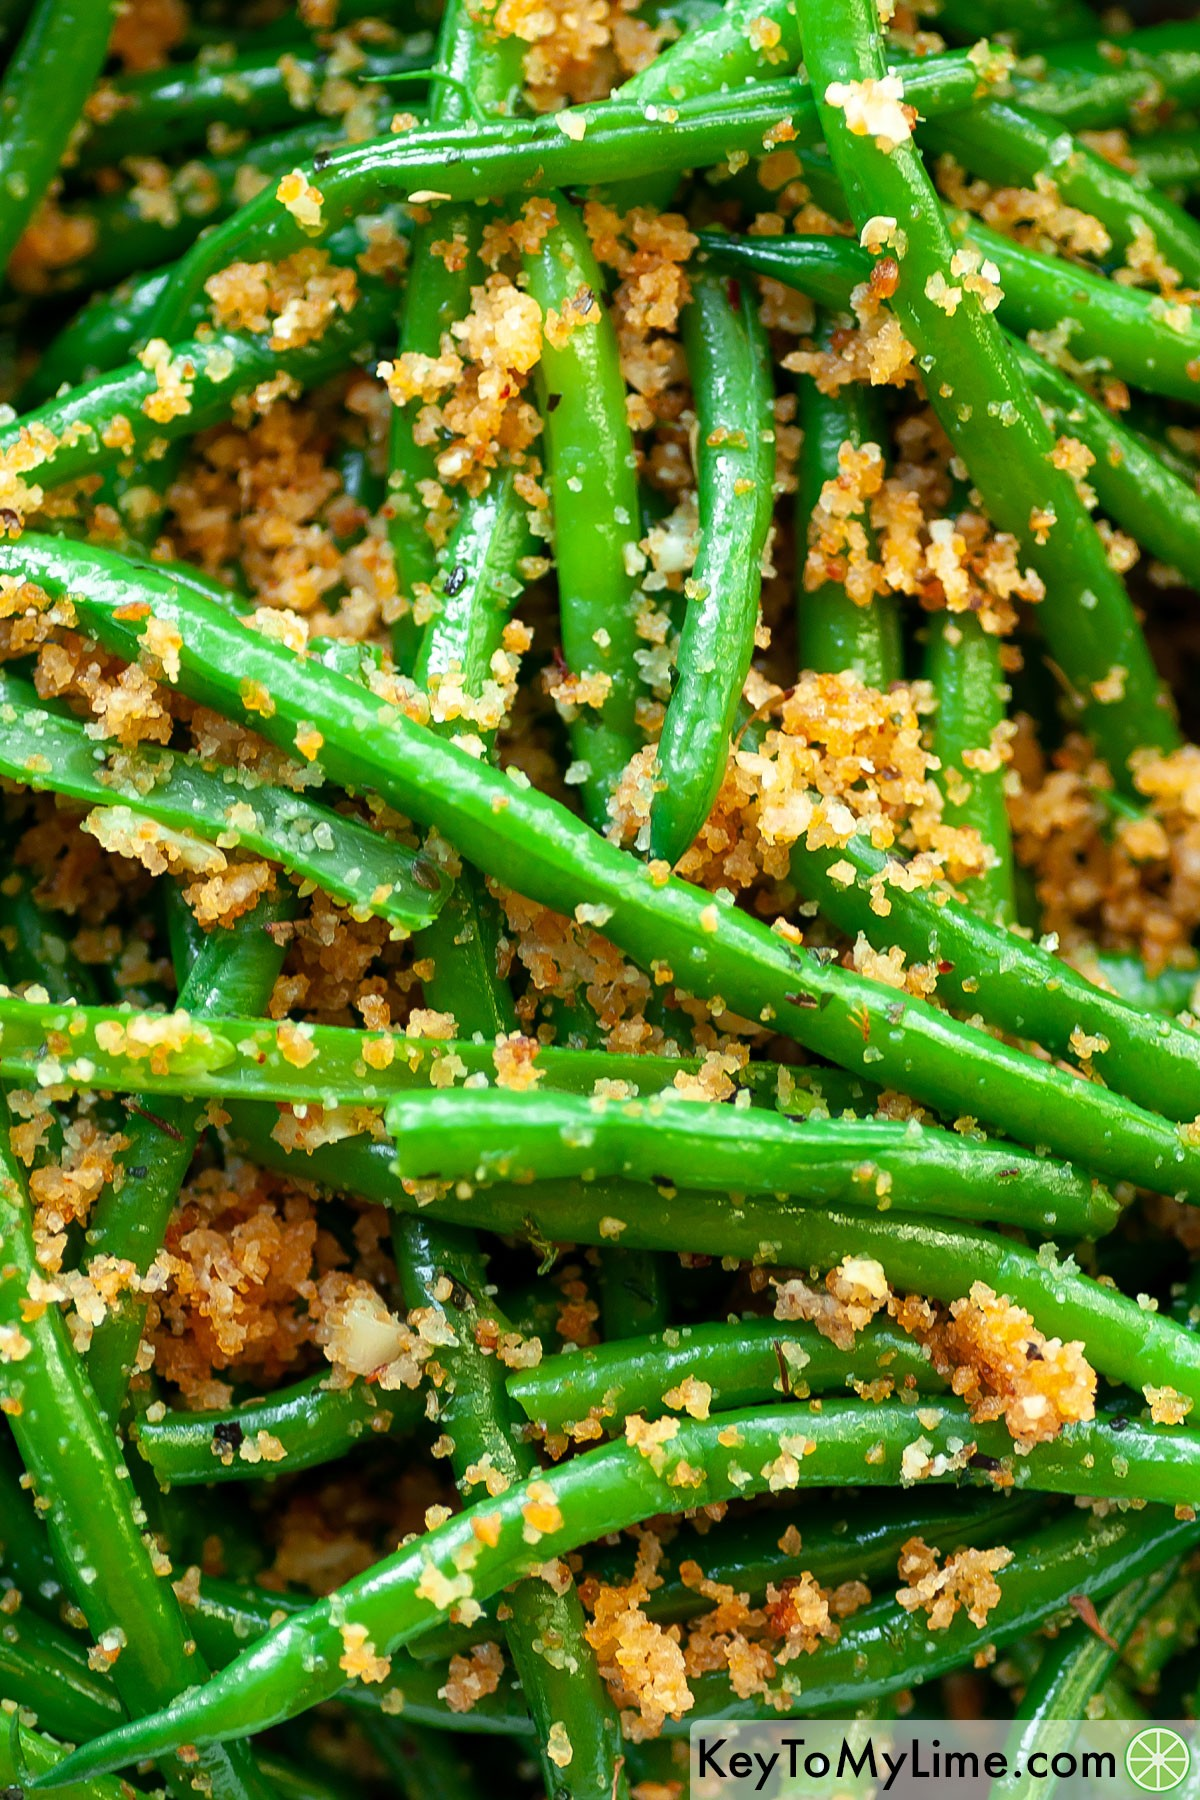 A close up image of Italian green beans coated in seasoned bread crumbs.